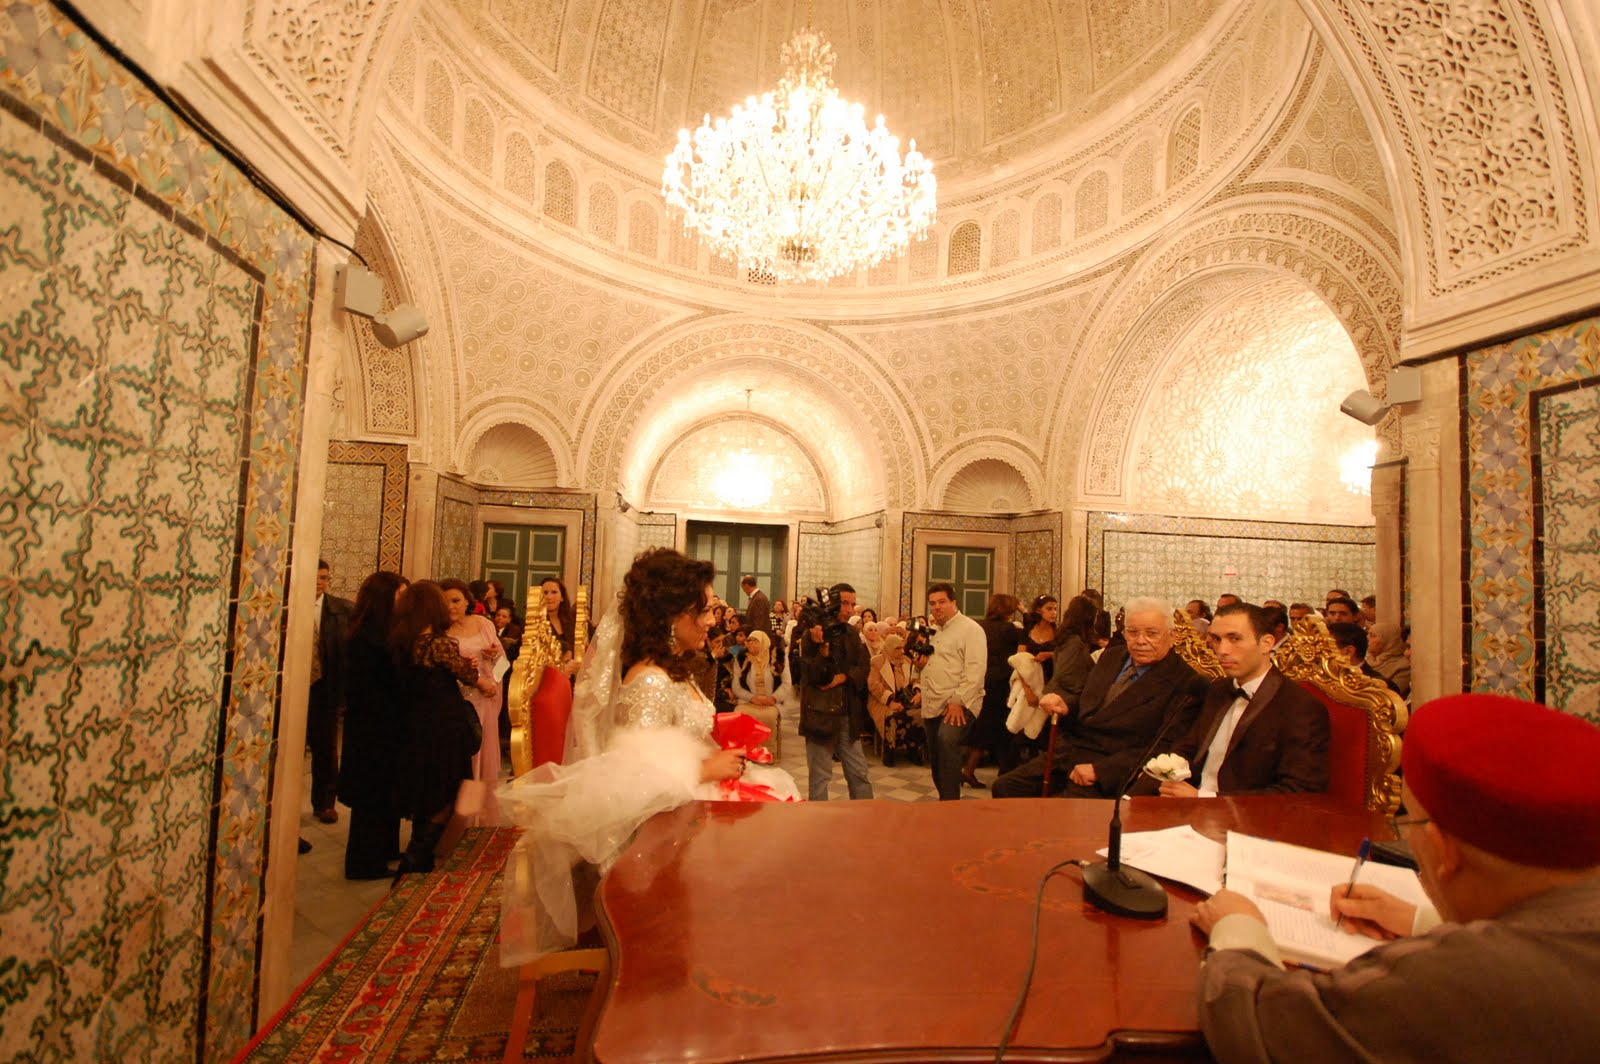 The Ceremony Took Place Tonight In A Beautiful Turkish Style Palace With Bride And Groom Sitting On An Elevated Surface Fathers Of Each